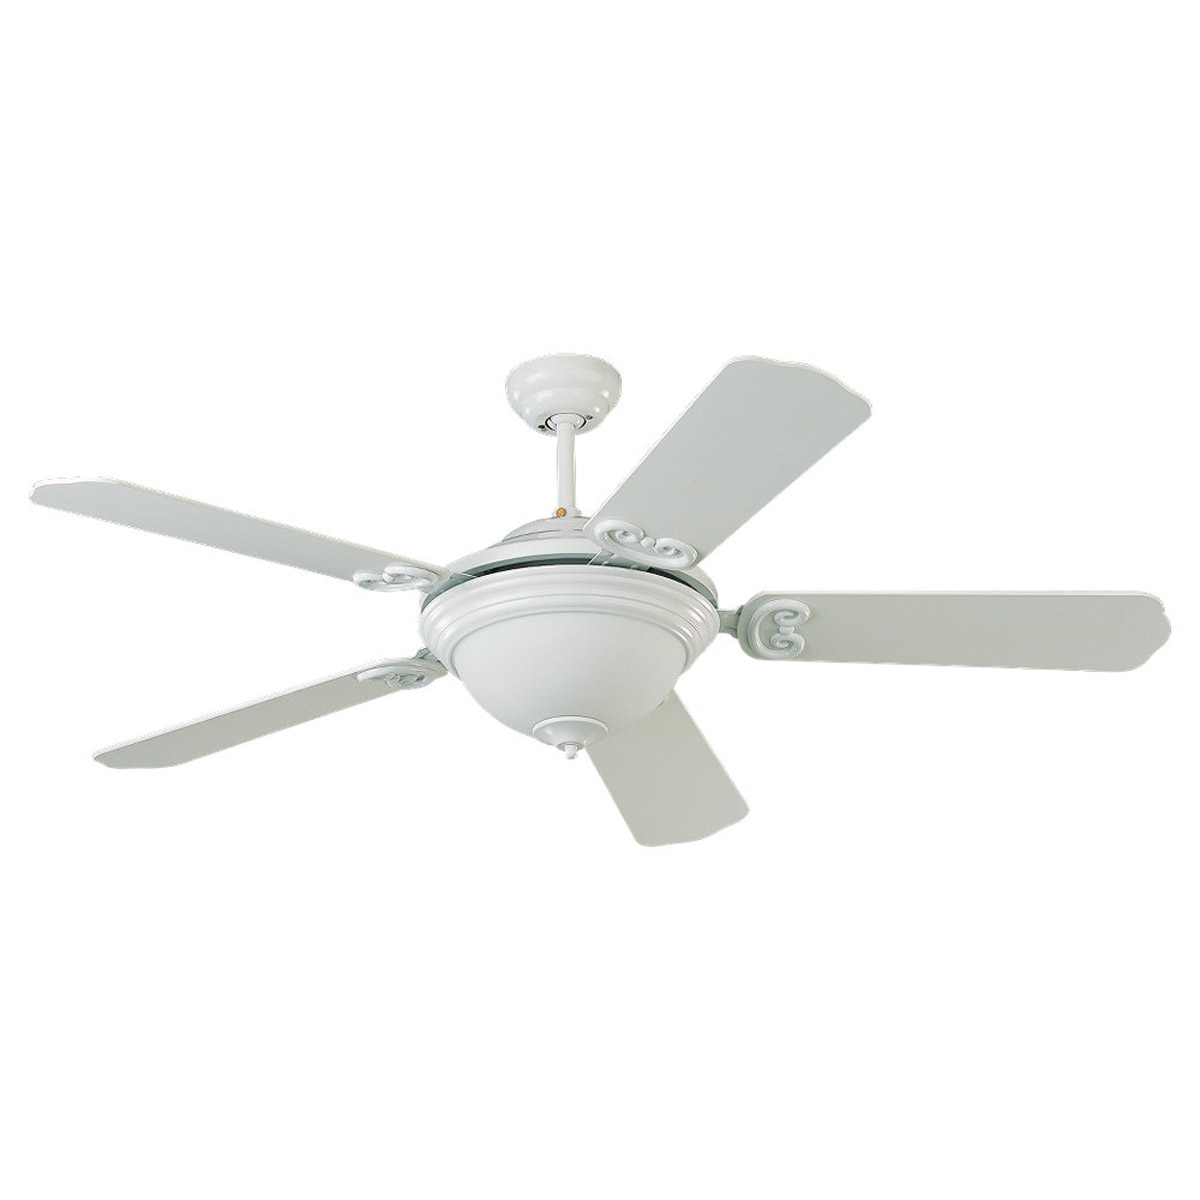 Sea Gull Lighting Park Avenue Elite 1 Light Fluorescent Ceiling Fan in White 15090BLE-15